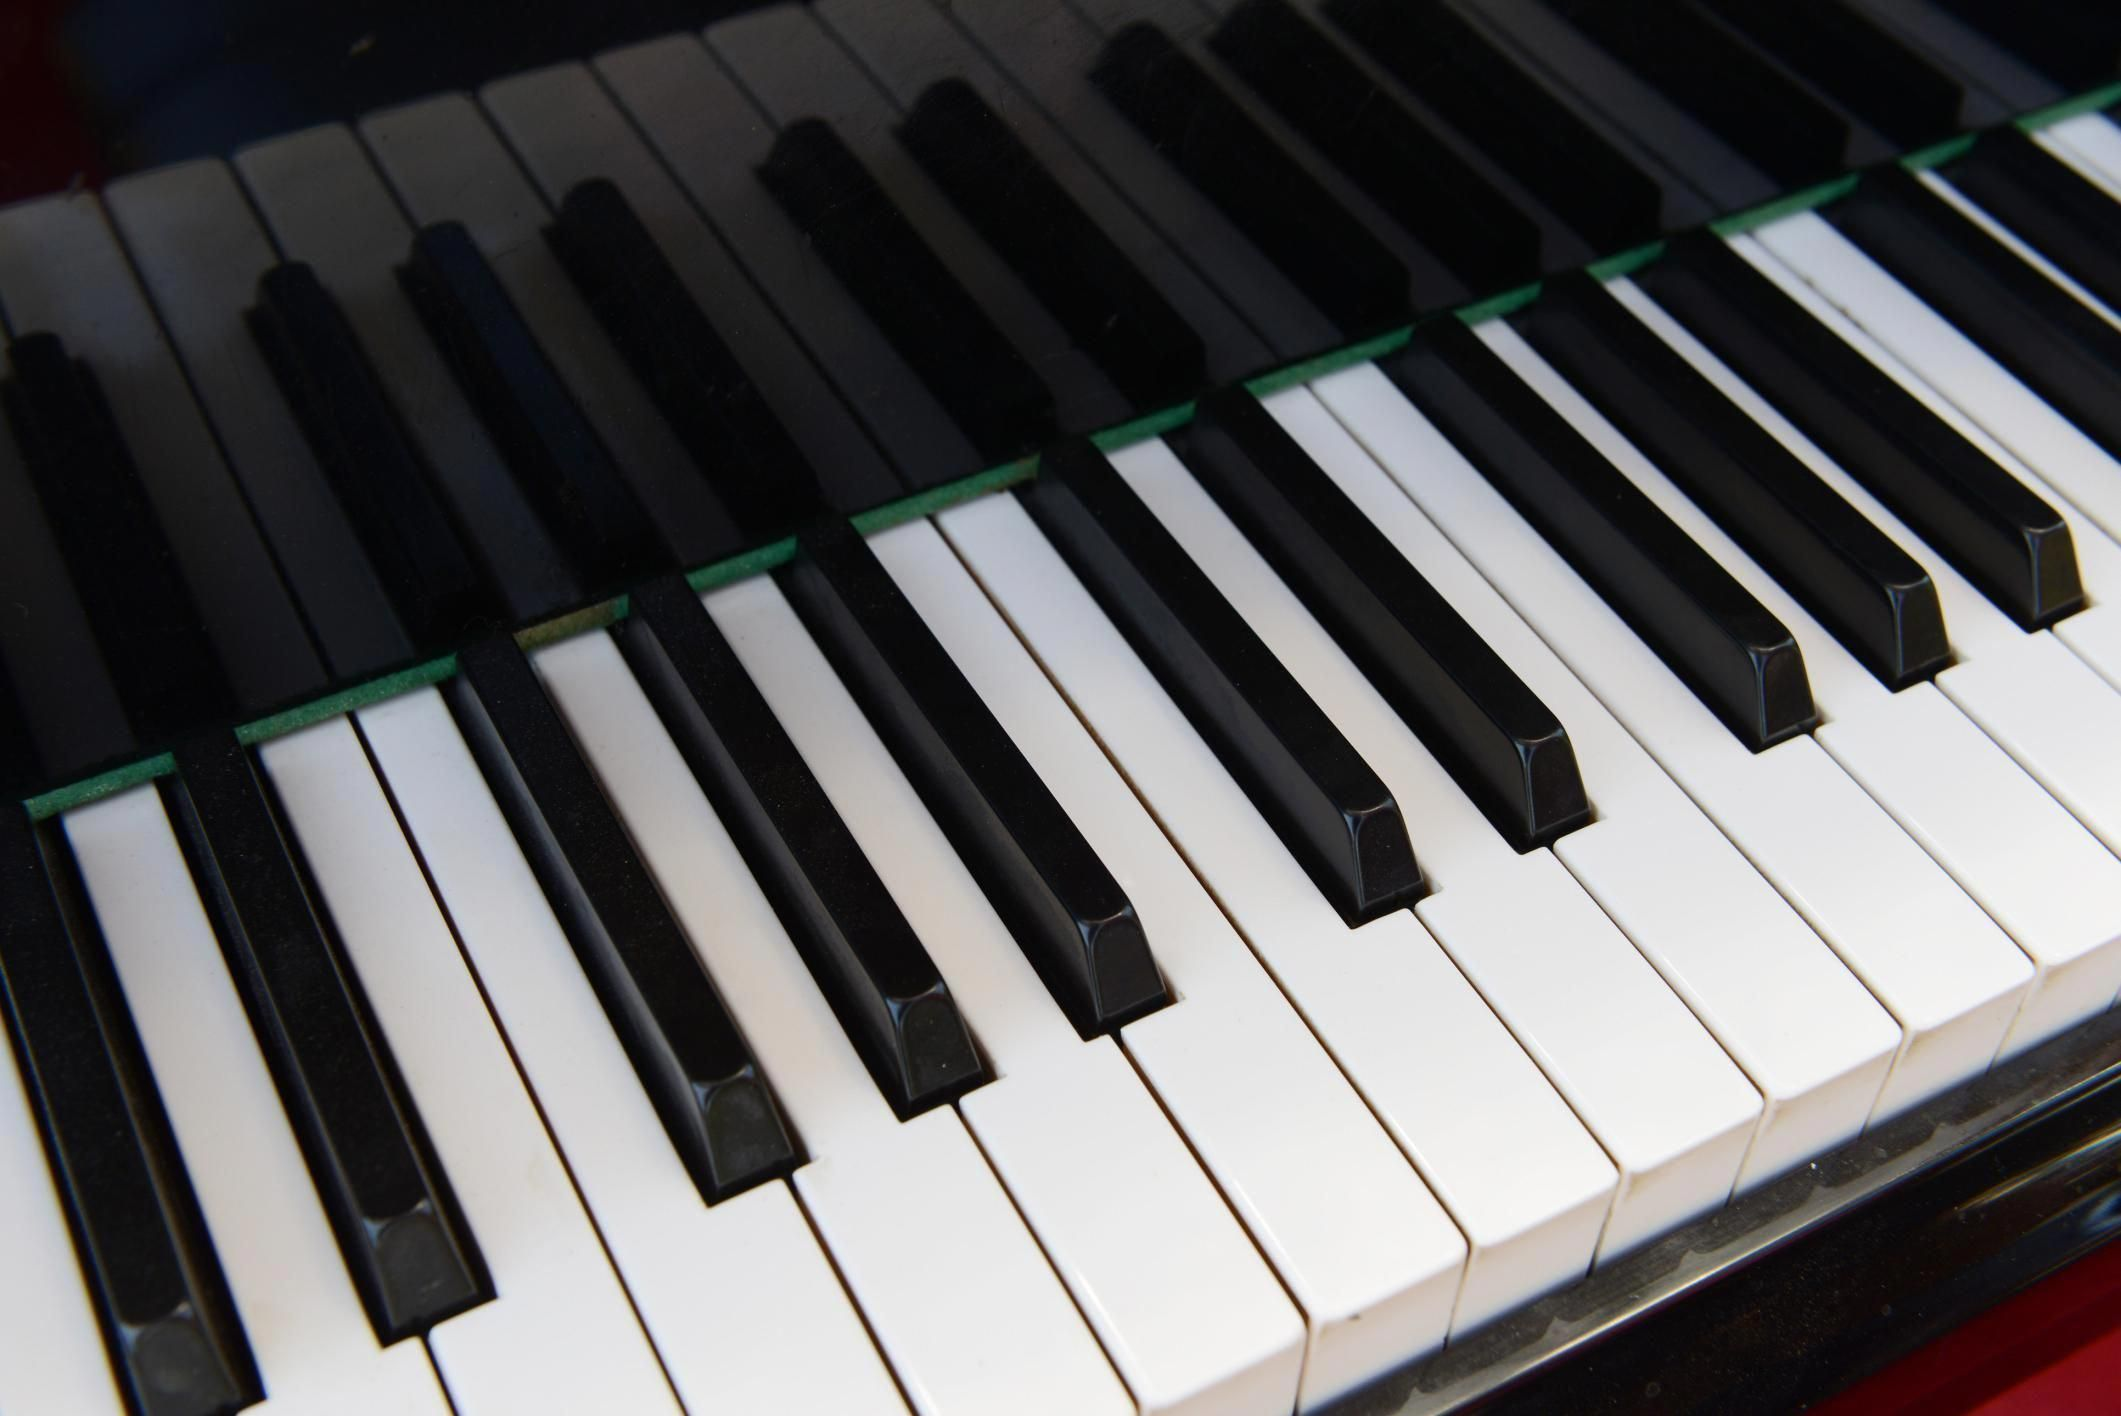 Many people still don't know that they can whiten piano